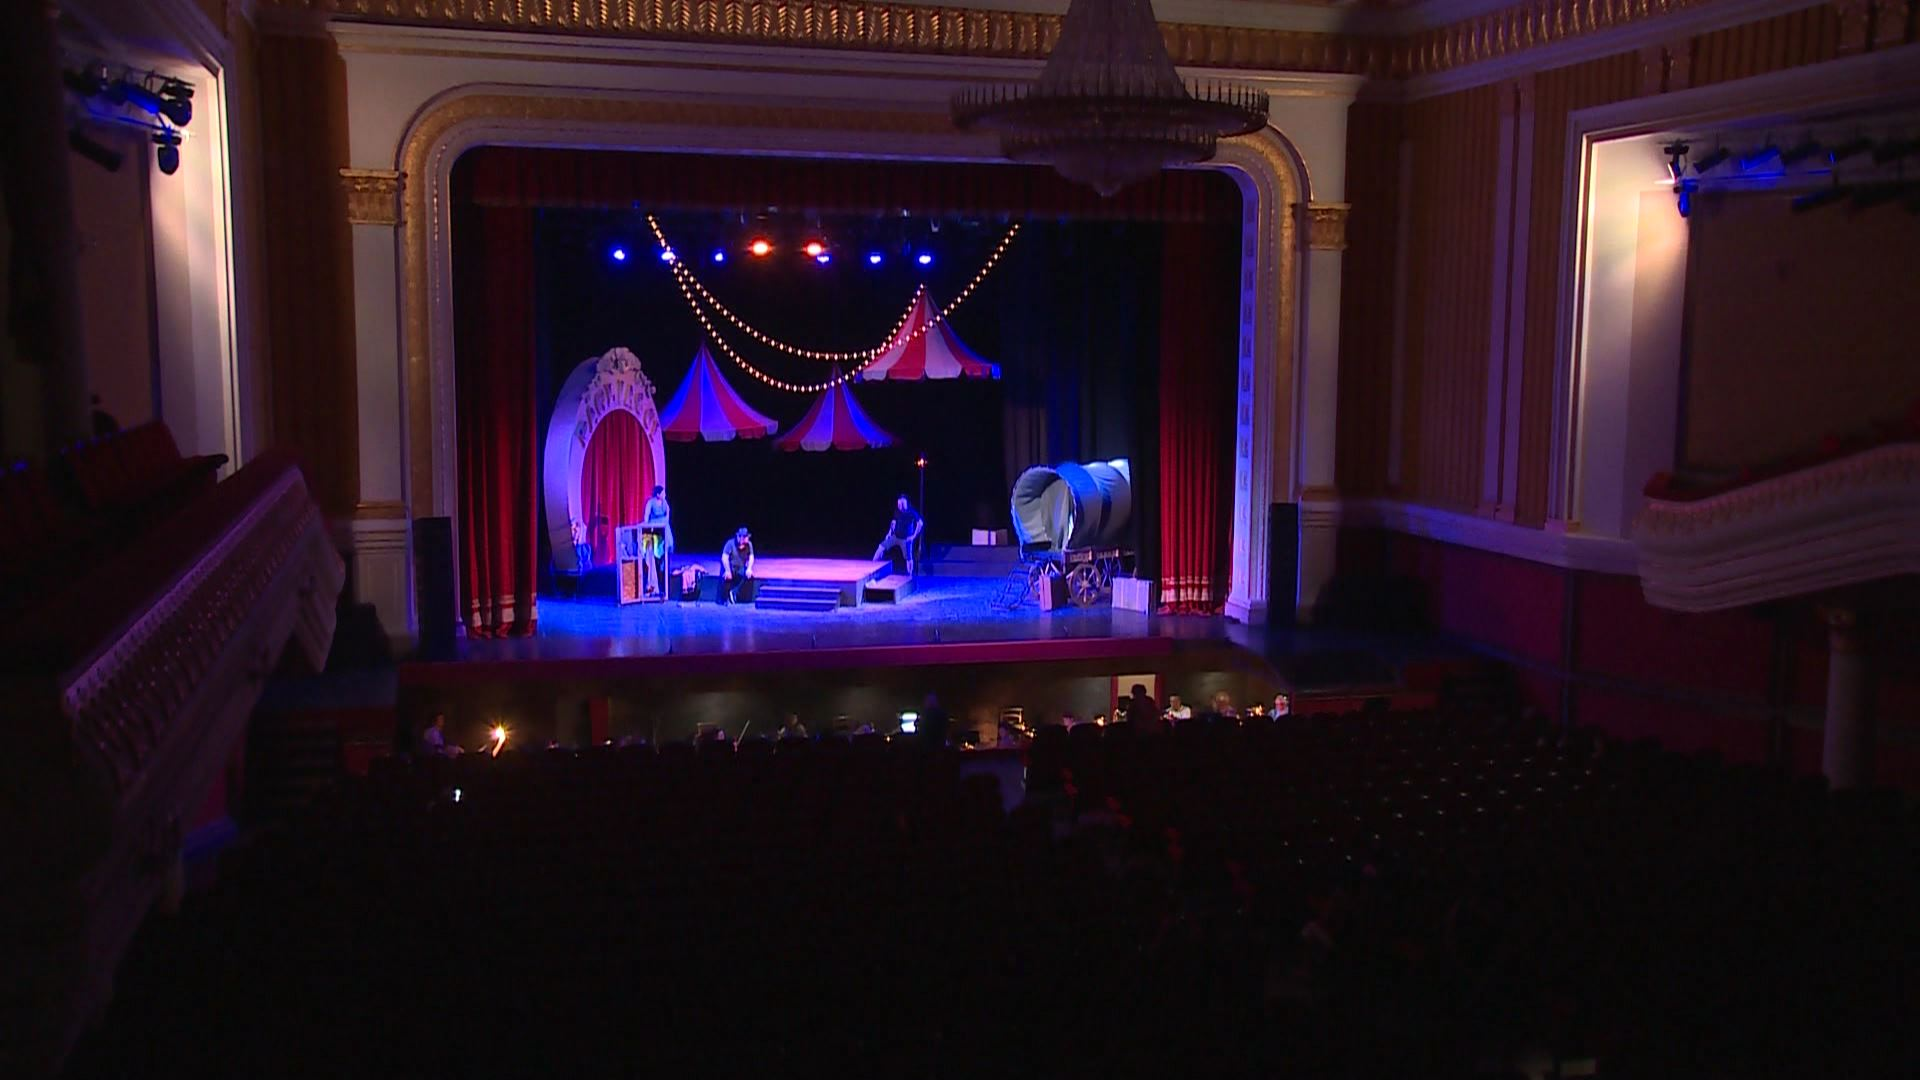 ''Clowns'' - The musical center is preparing for the premiere